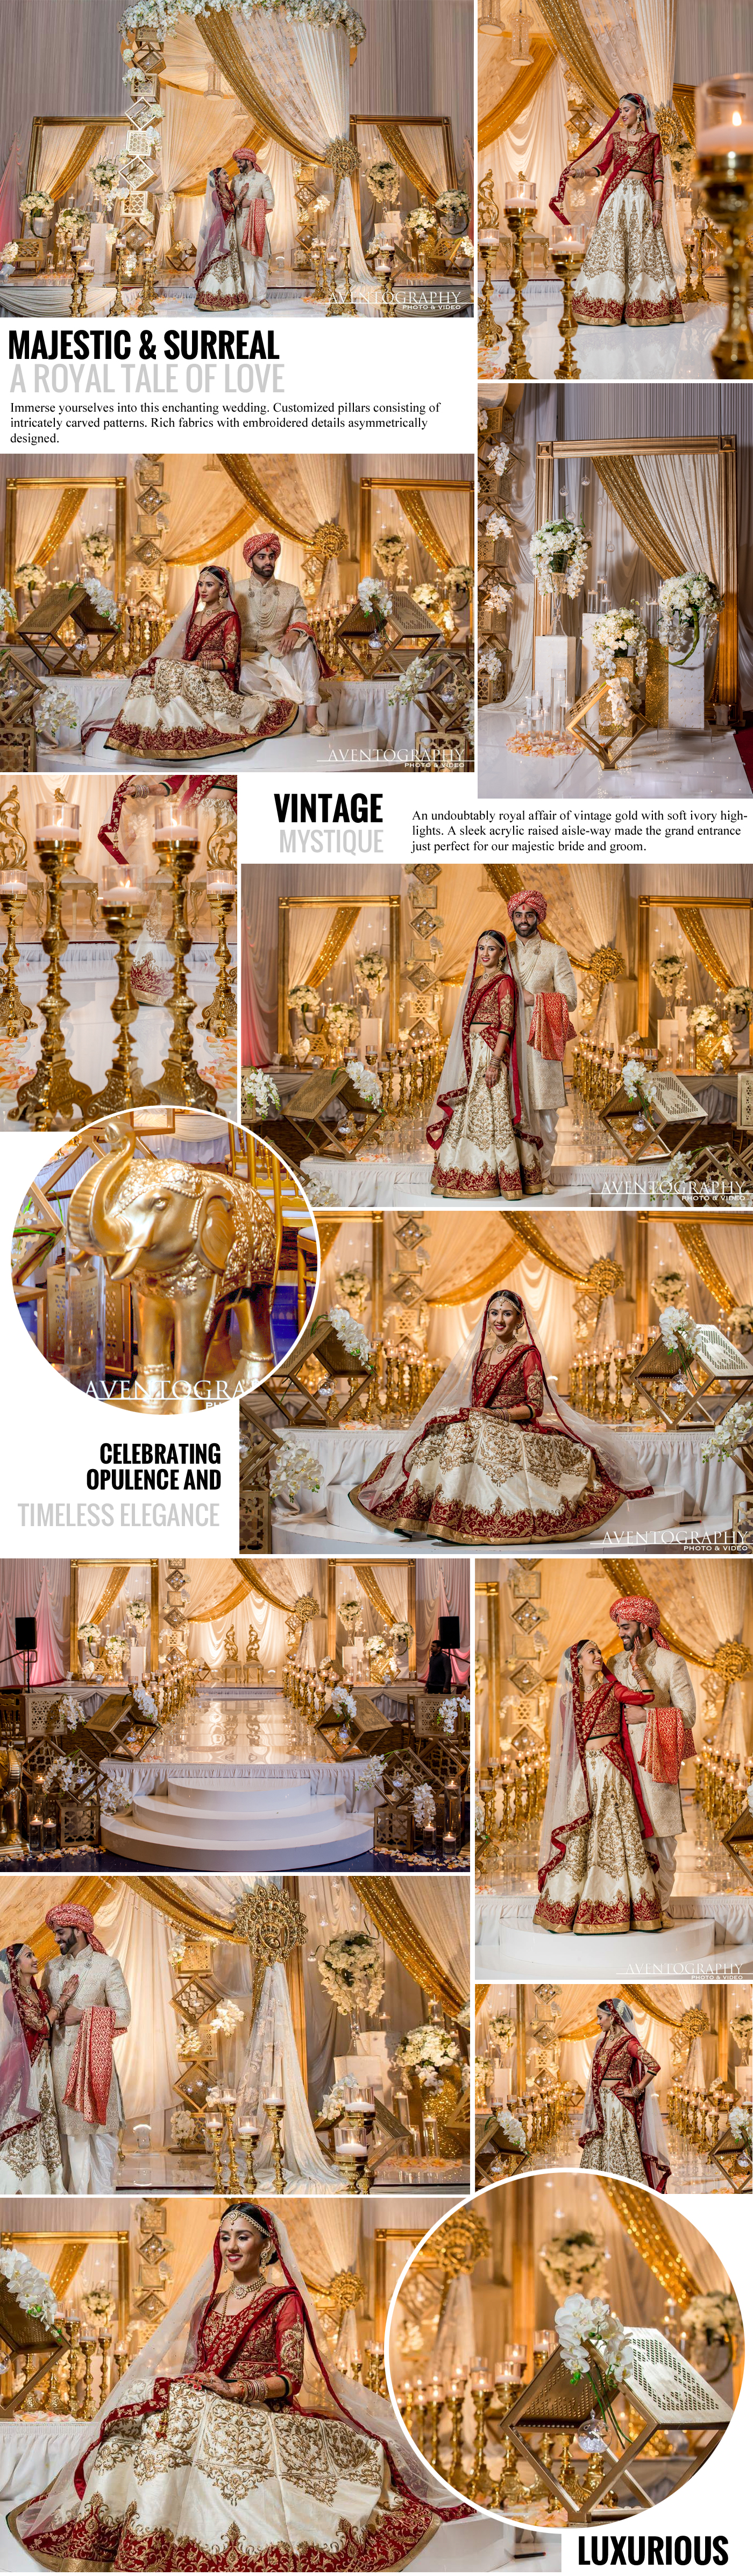 Majestic and surreal, A royal tale of Love, Immerse yourselves into this enchanting wedding. Customized pillars consisting of intricately carved patterns. Rich fabrics with embroidered details asymmetrically designed. Vintage Mystique, An undoubtably royal affair of vintage gold with soft ivory highlights. A sleek acrylic raised aisle-way made the grand entrance just perfect for our majestic bride and groom.